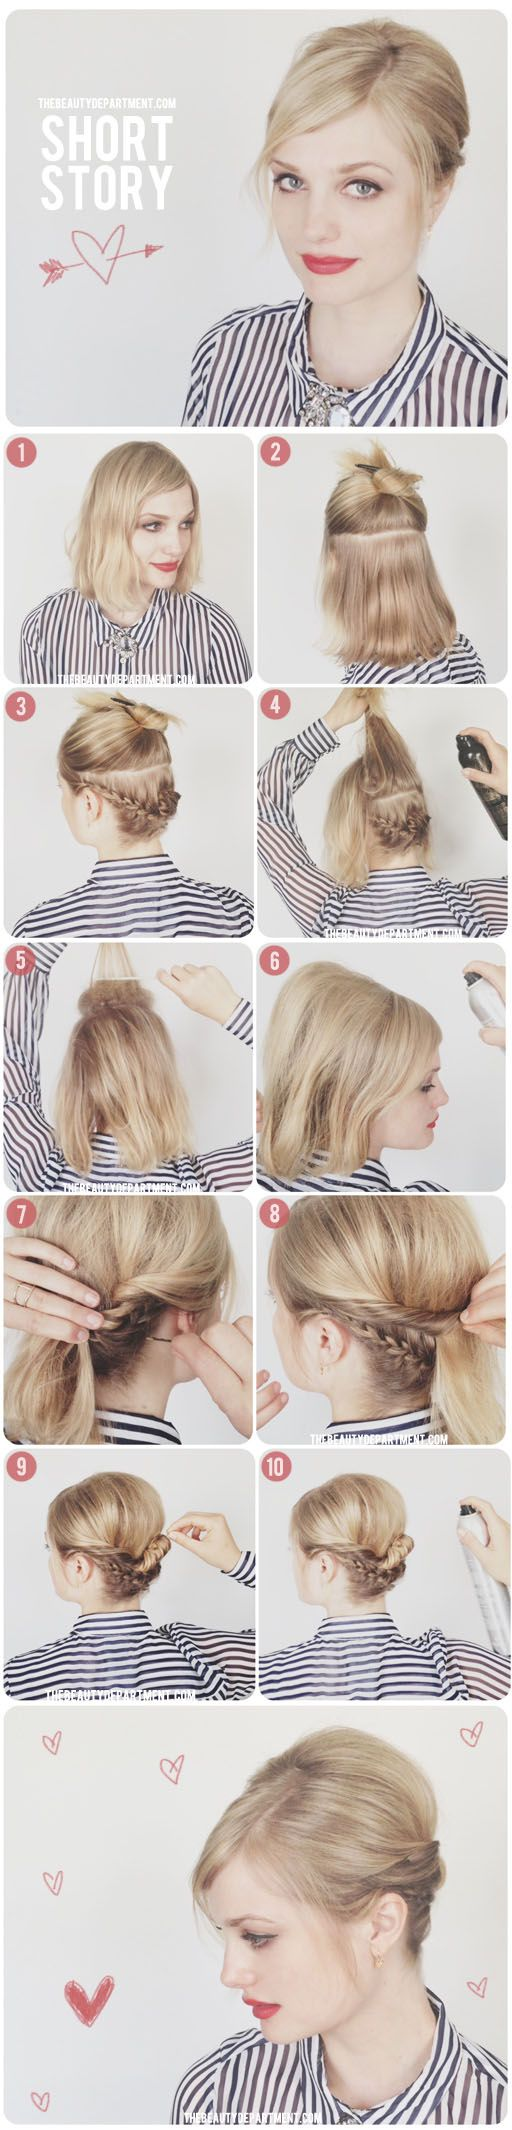 30  Short Hairstyles For That Perfect Look